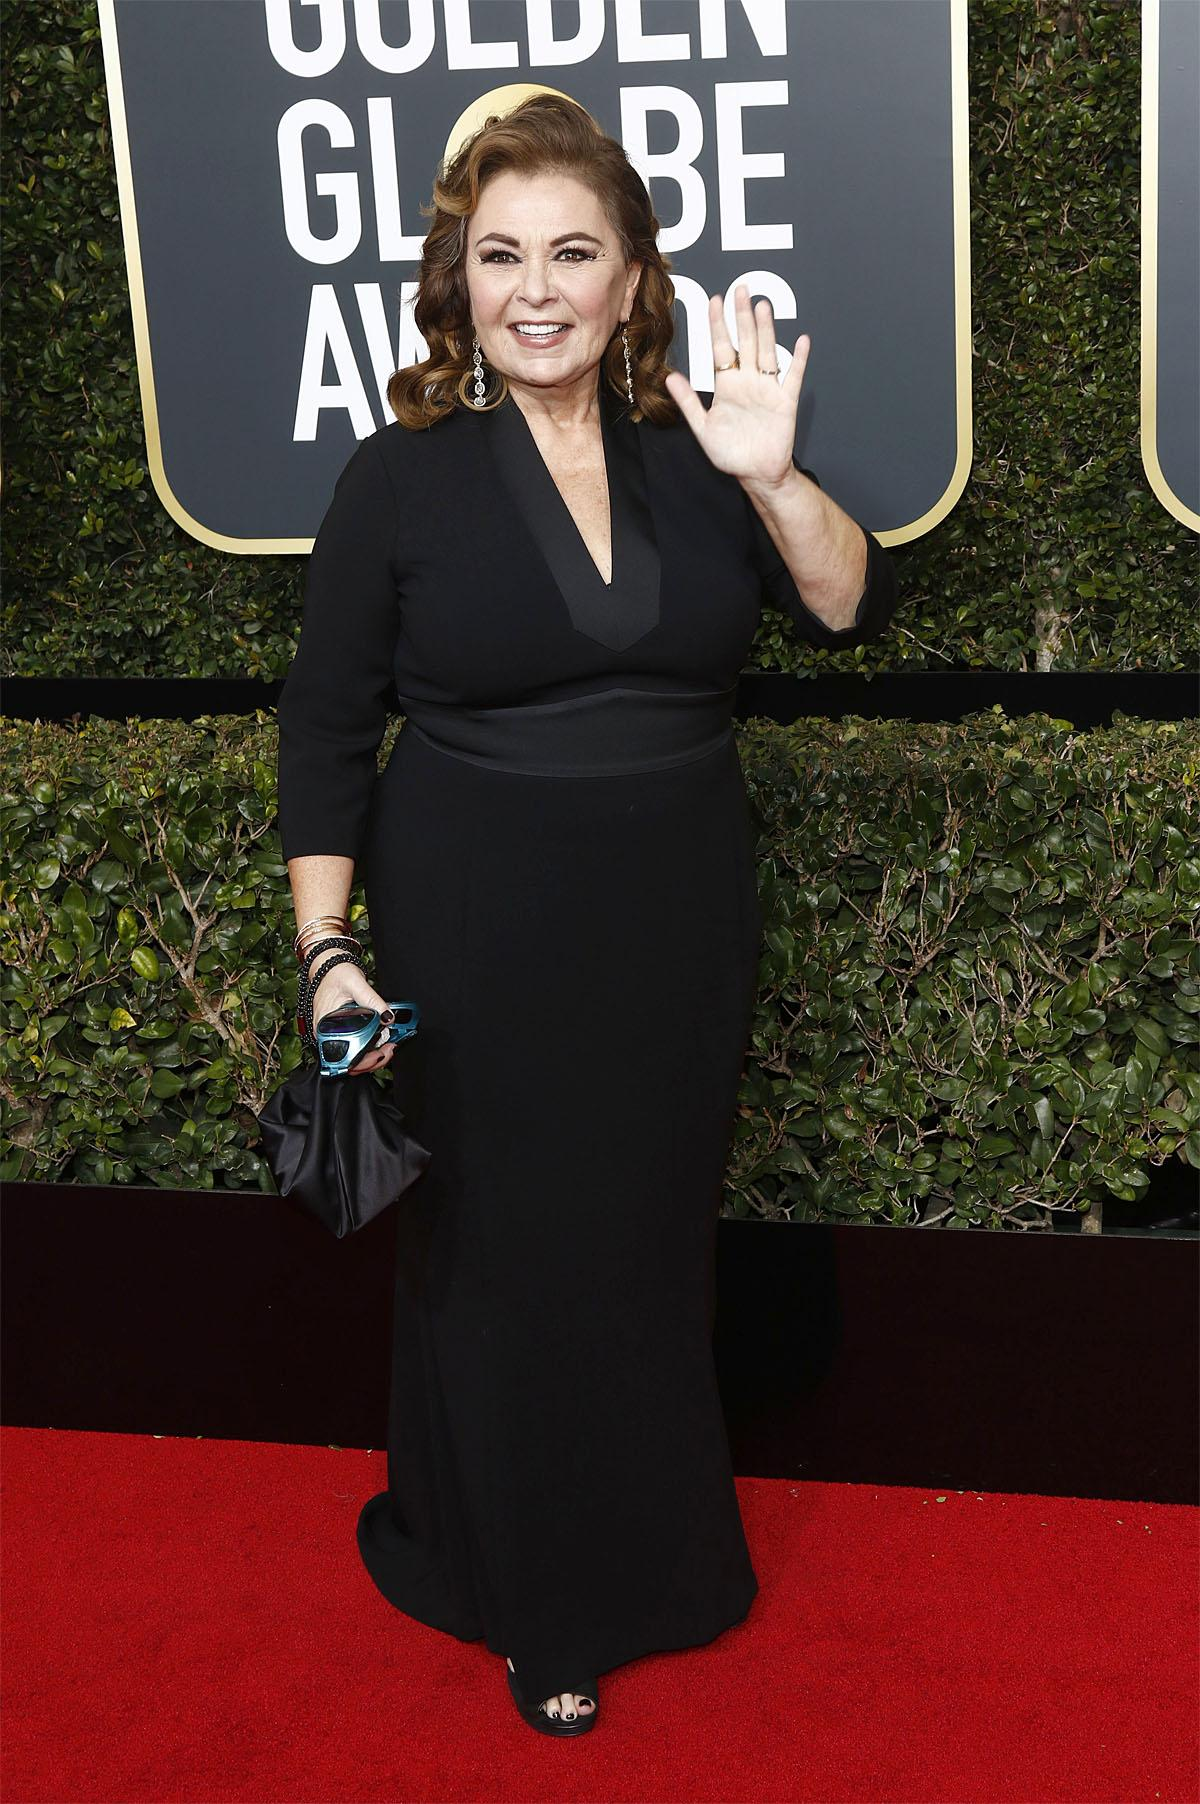 75th Golden Globe Awards held at the Beverly Hilton Hotel - Arrivals                                    Featuring: Roseanne Barr                  Where: Los Angeles, California, United Kingdom                  When: 07 Jan 2018                  Credit: Regina Wagner/Future Image/WENN.com                                    **Not available for publication in Germany**